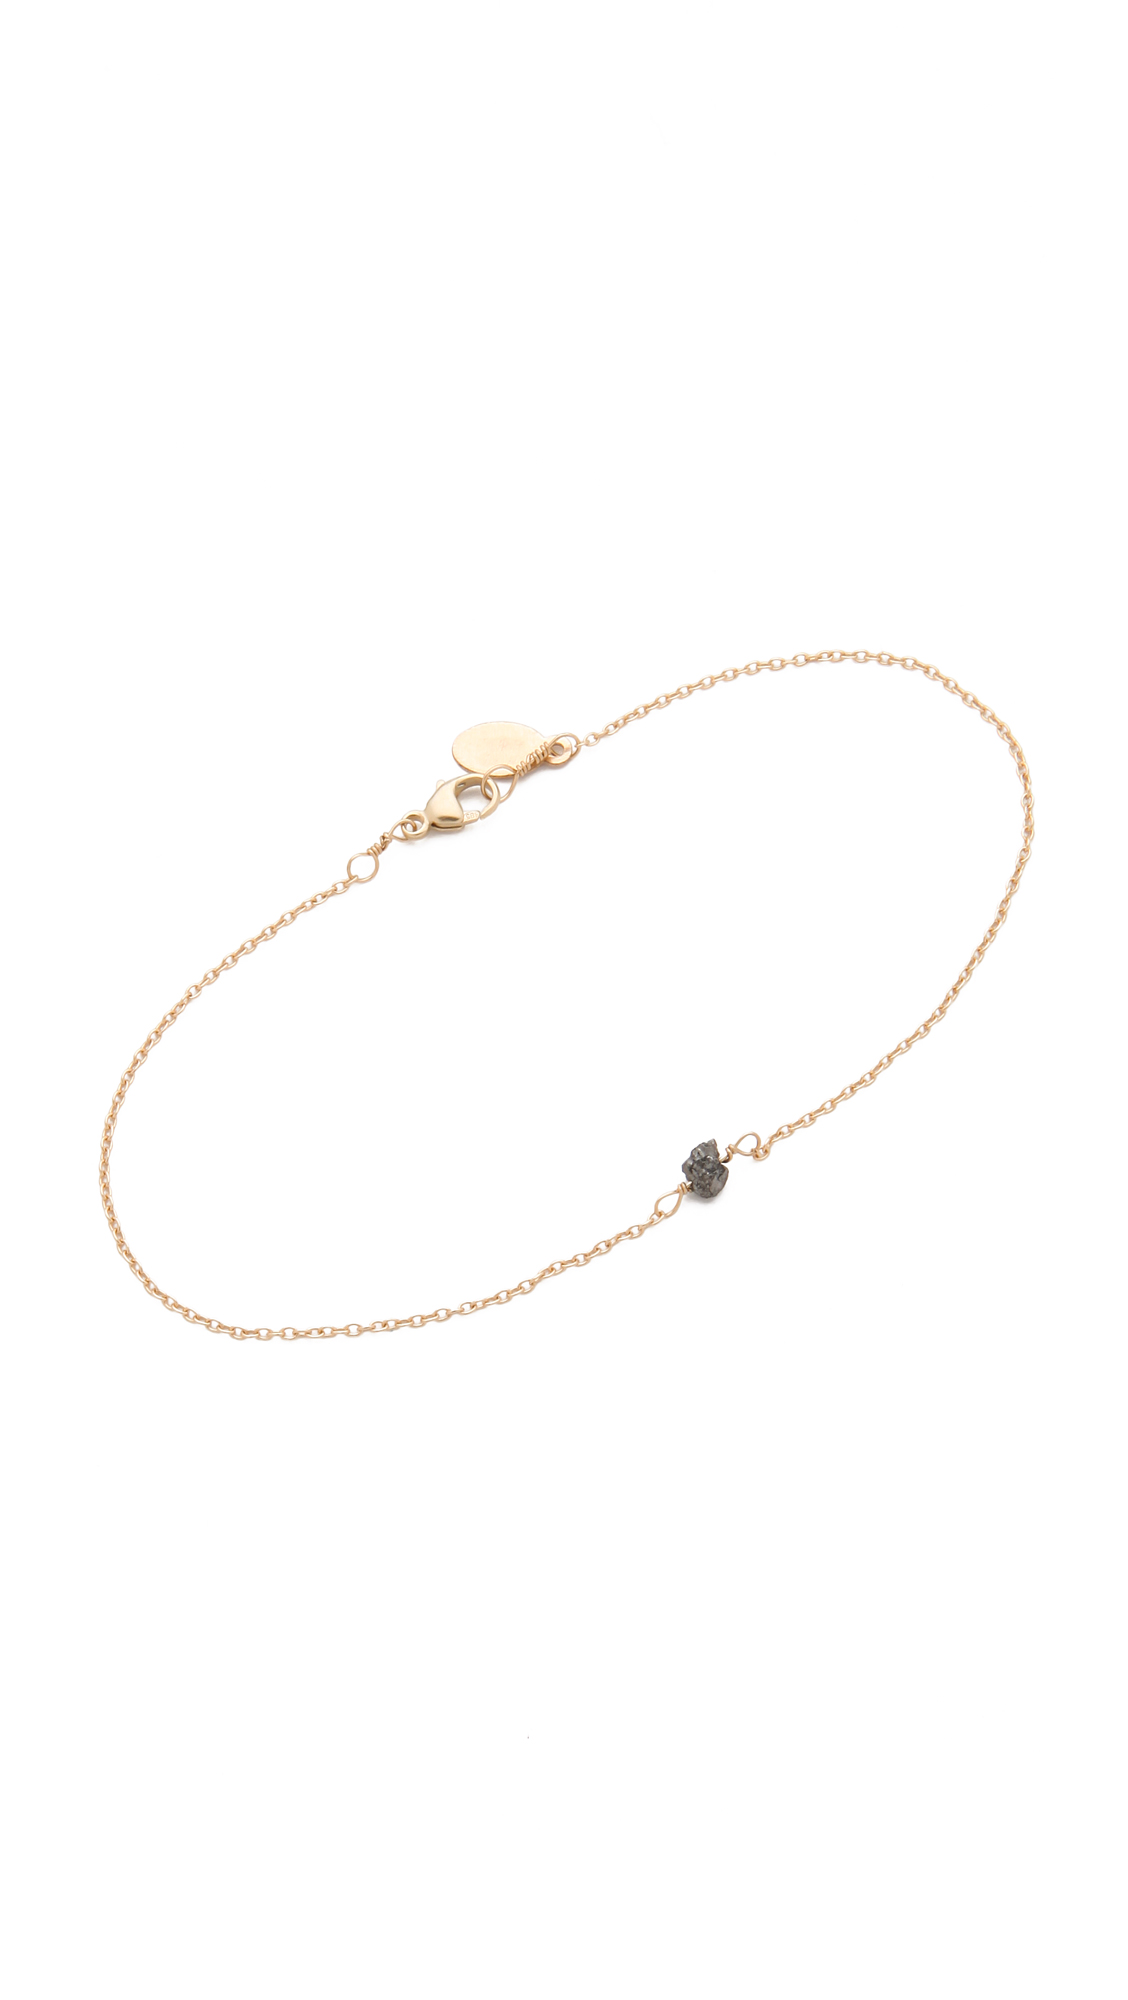 Gabriela Artigas Chain Choker - Yellow Gold Os